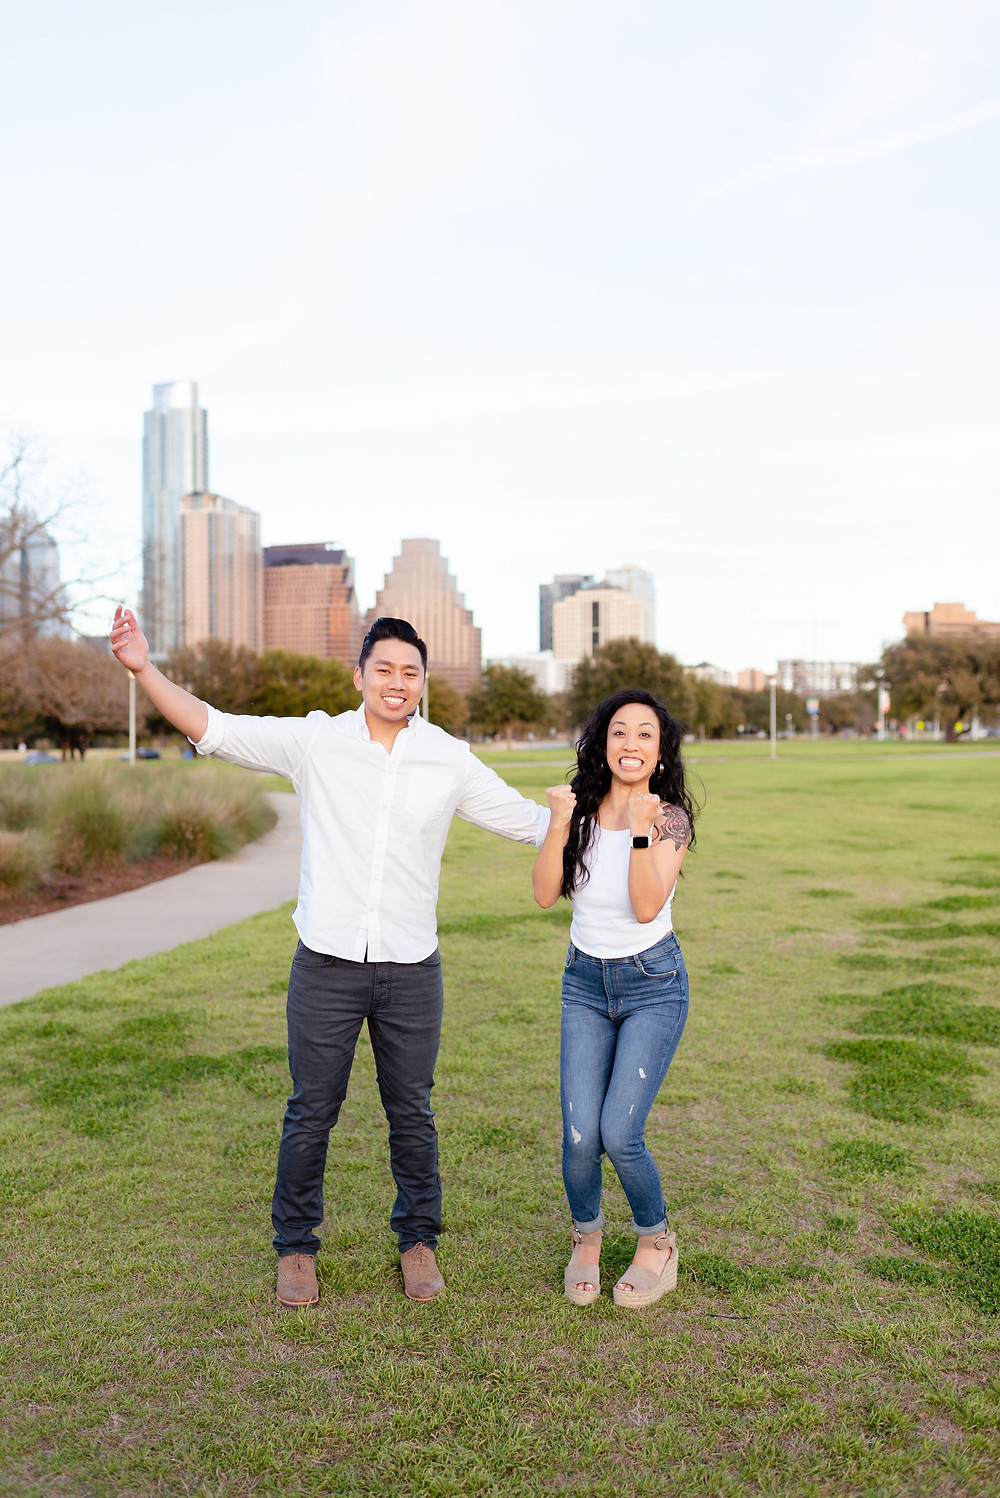 doug sahm hill downtown austin proposal. photo of how excited the couple is after getting engaged